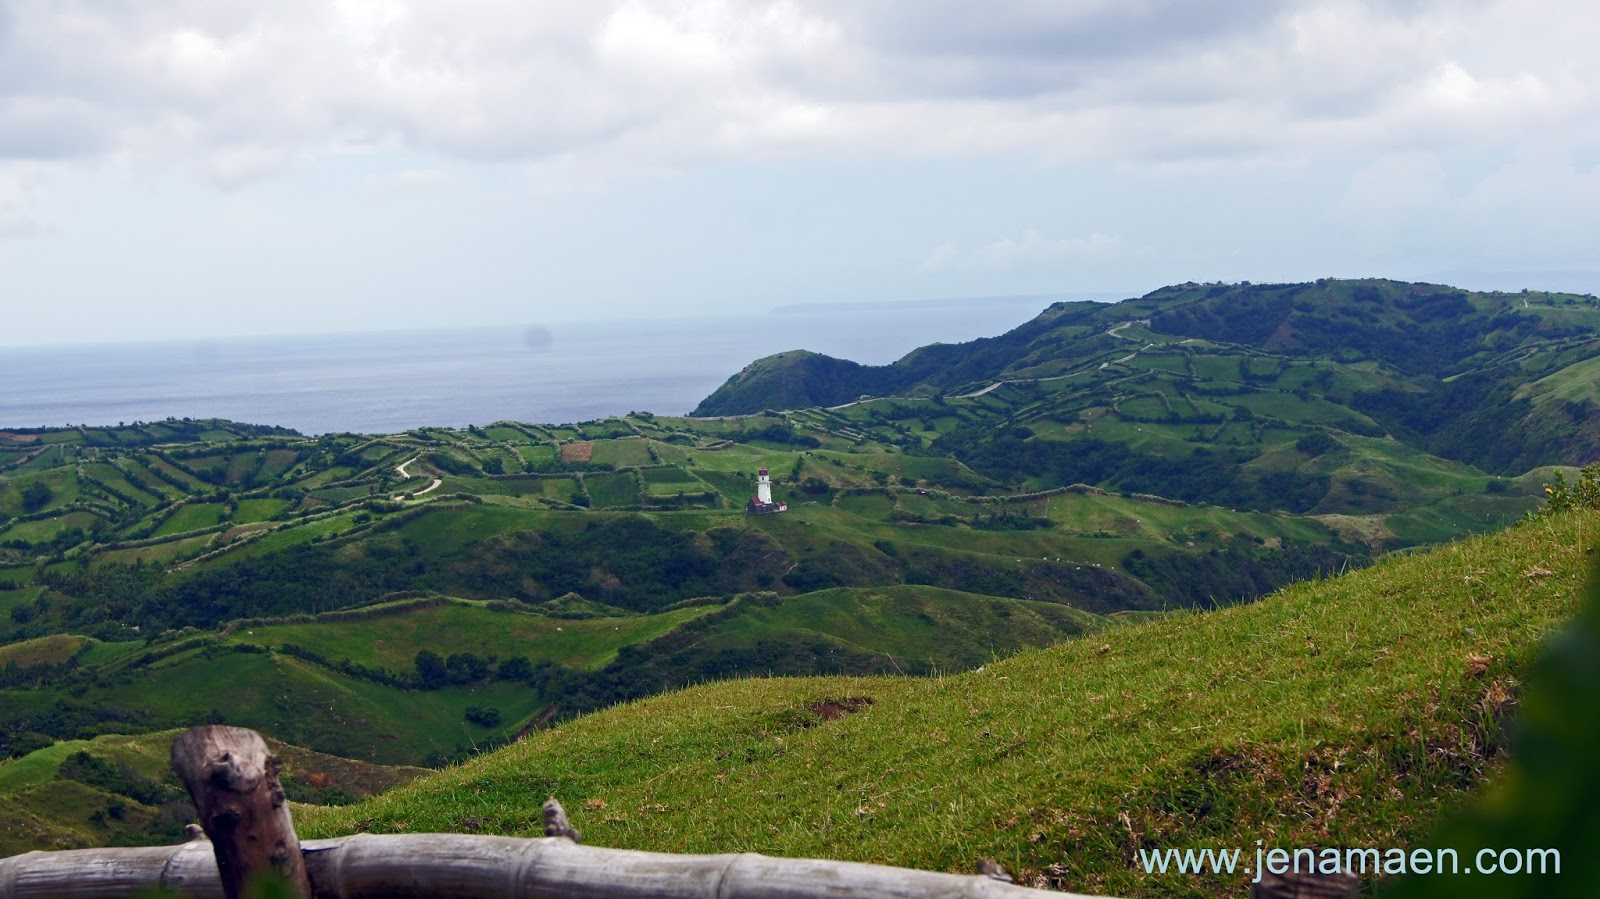 Beyond the Rolling Hills ft. Honest Batanes (Part 2)